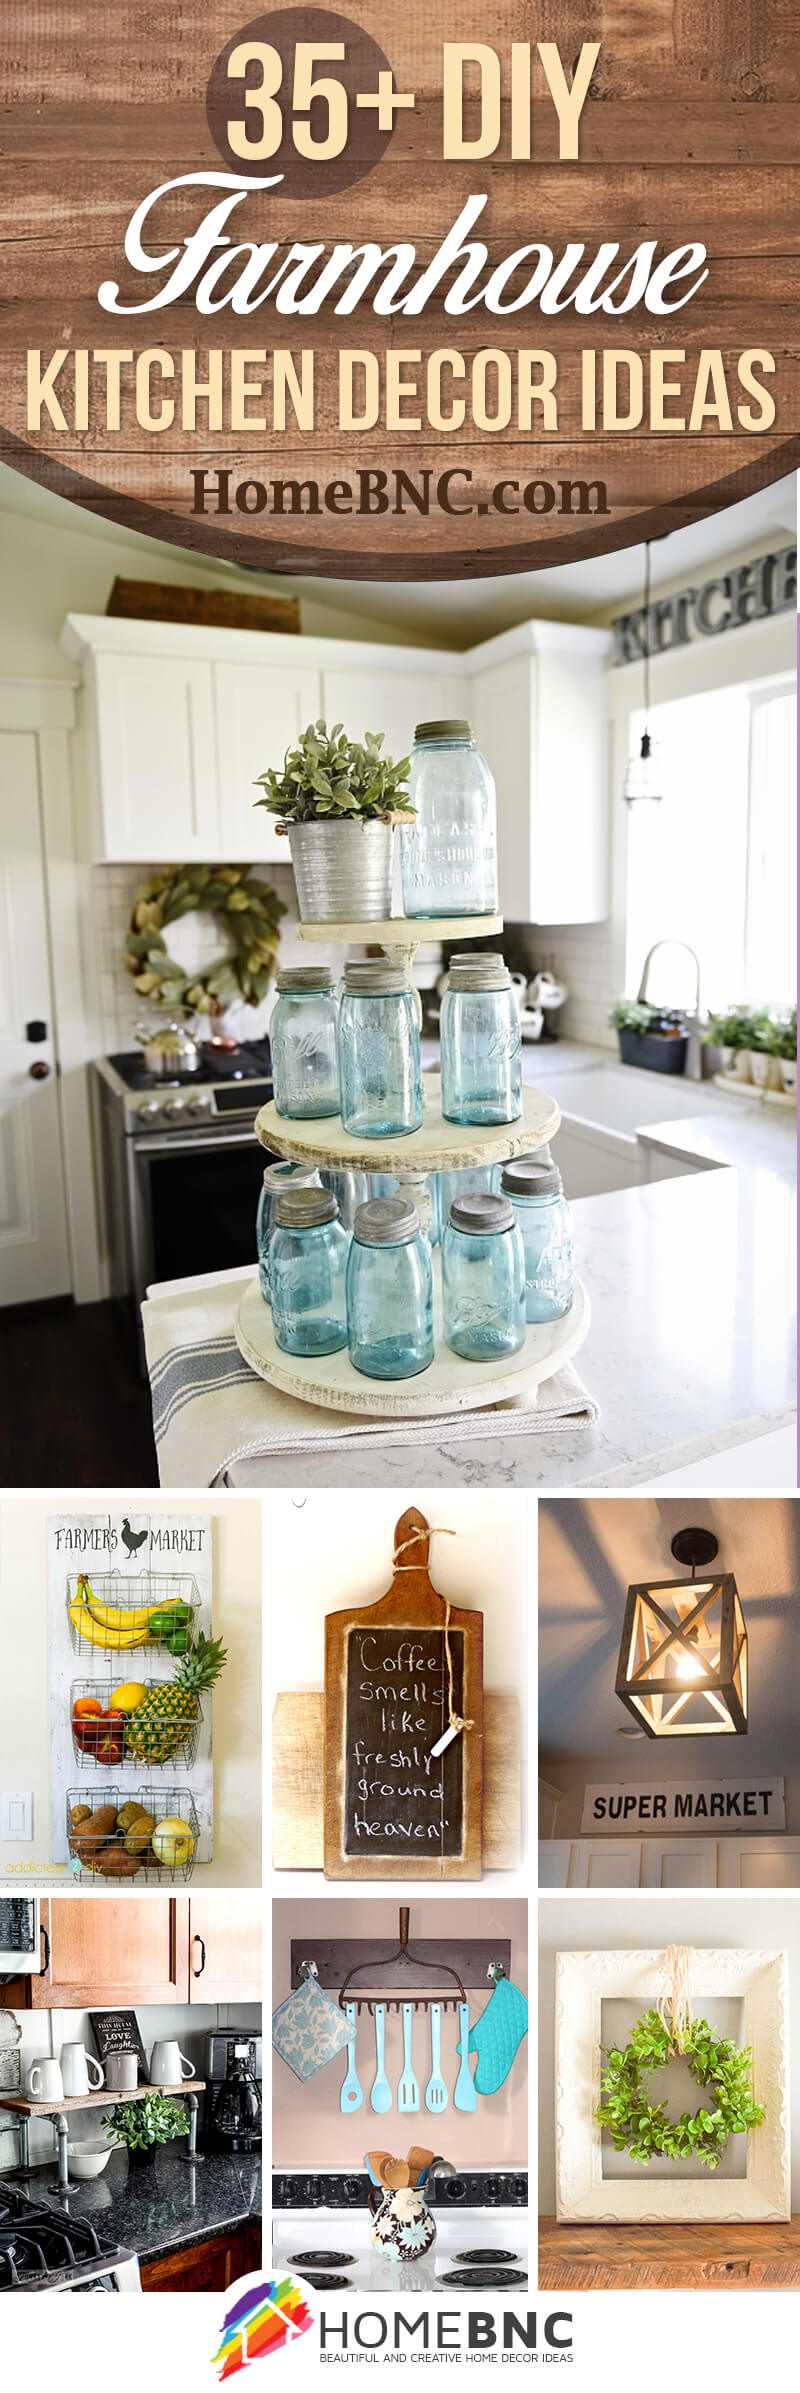 35 Best Diy Farmhouse Kitchen Decor Projects And Ideas For 2020